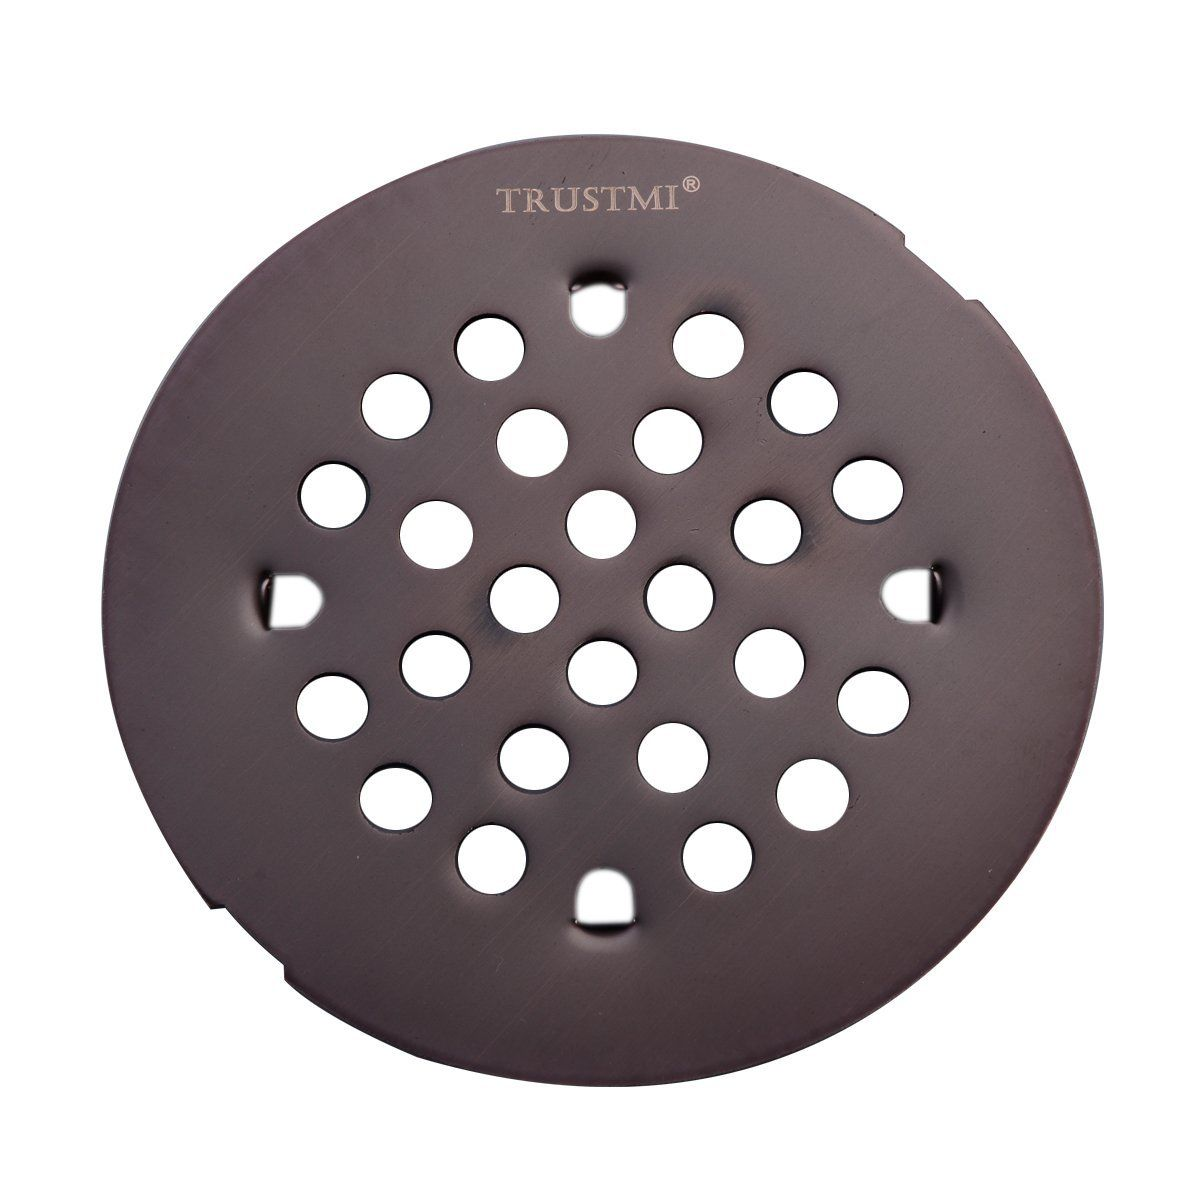 Oil Rubbed Bronze Shower Drain.4 1 4 Inch Snap In Shower Drain Grate Oil Rubbed Bronze